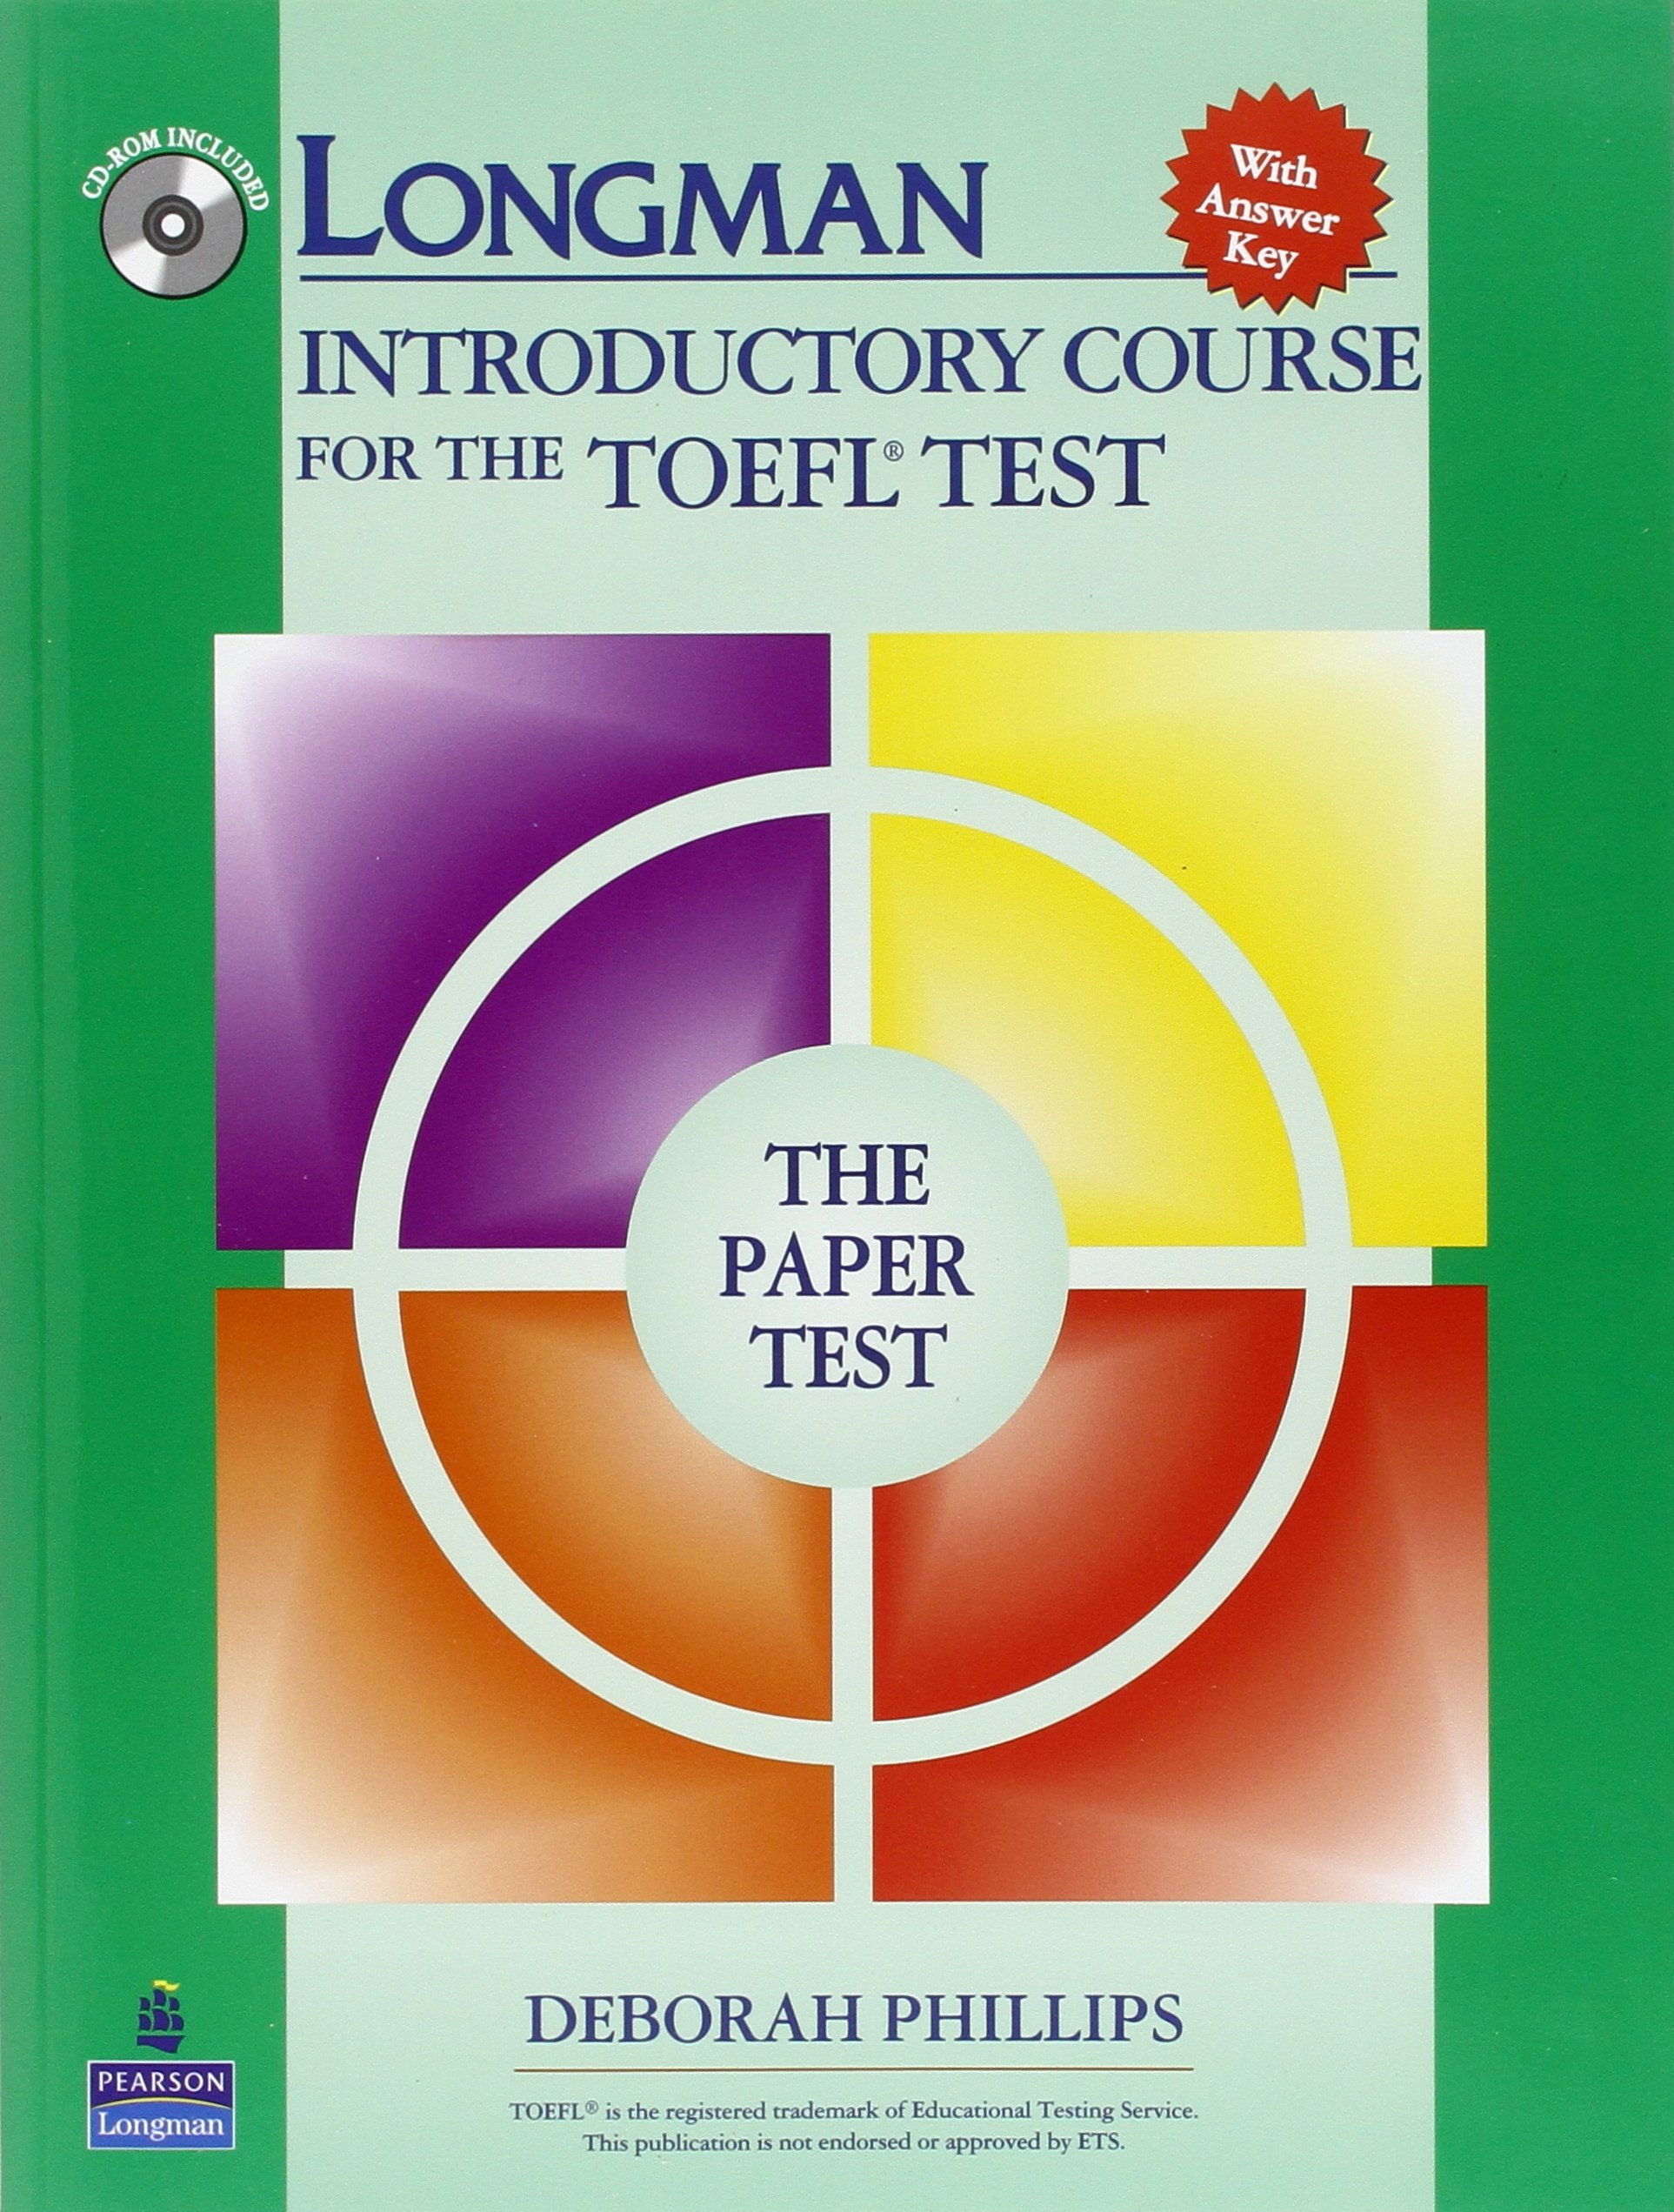 Buy Longman Introductory Course for the TOEFL Test, The Paper Test (Book  with CD-ROM, with Answer Key) (Audio CDs or Audiocassettes required) Book  Online at ...